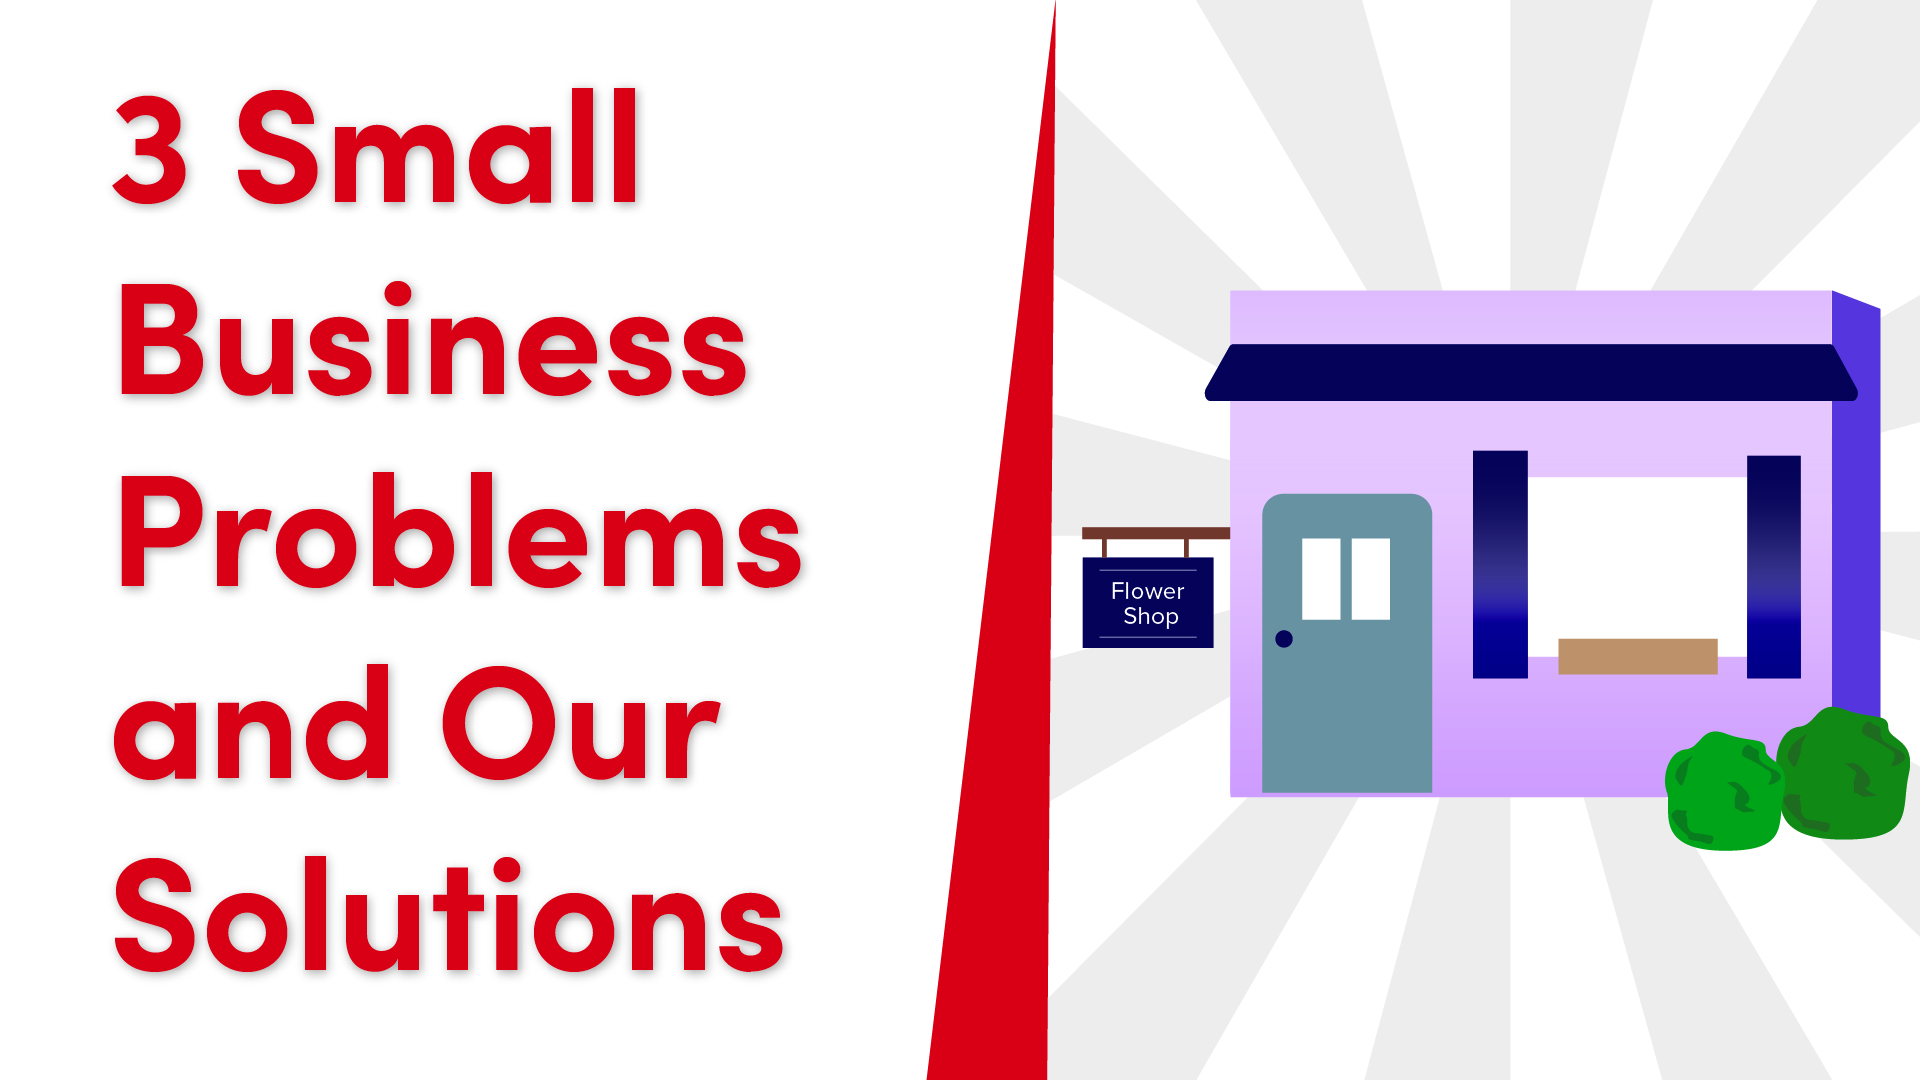 3 Small Business Problems & Our Solutions